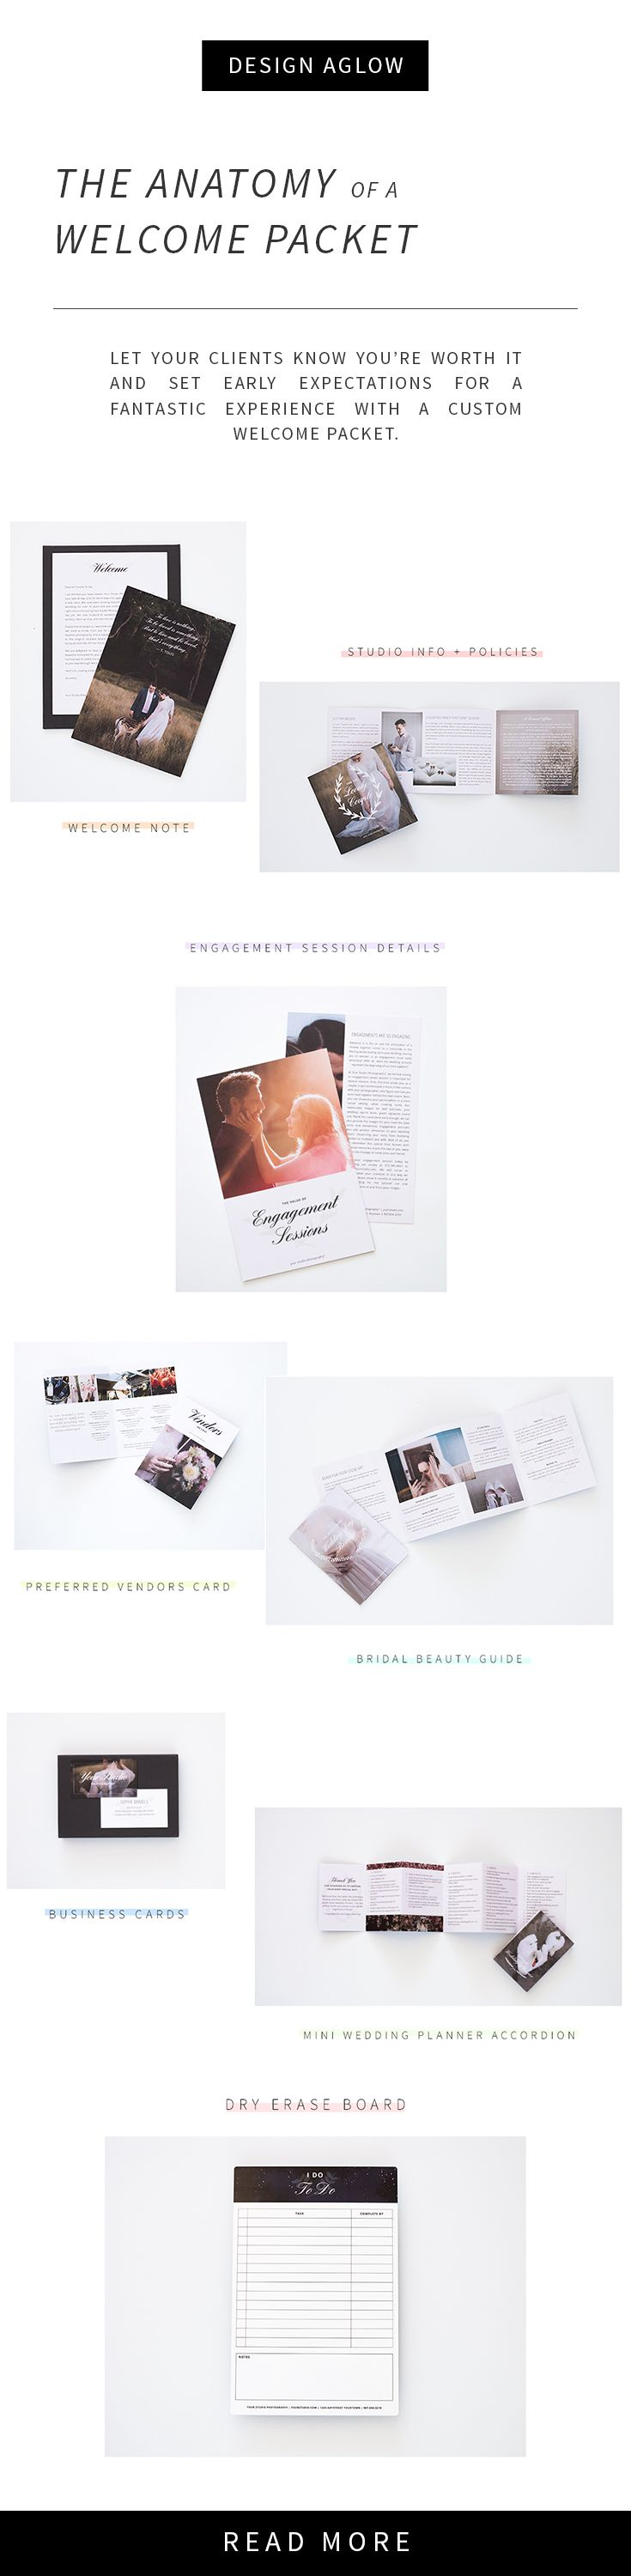 Welcome packets are the essential marketing tool that all photographers should have. Welcome packets set the scene for a boutique photography experience and position you as the premier studio in your market. Get started and customize your welcome packet today, no software needed!